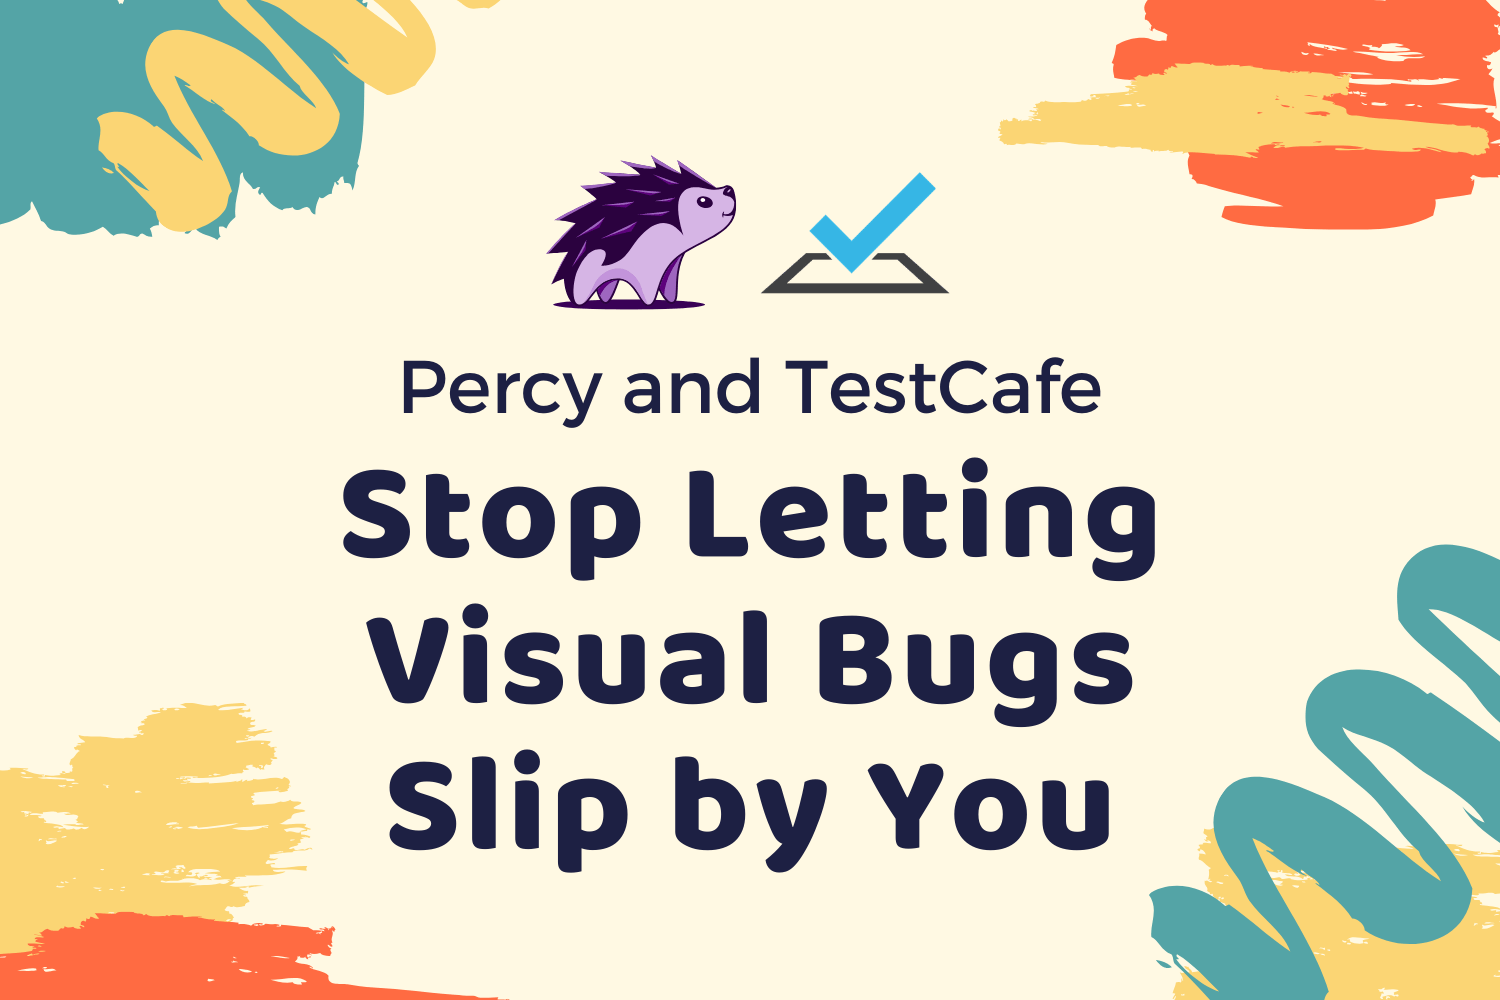 Percy and TestCafe: Stop Letting Visual Bugs Slip by You